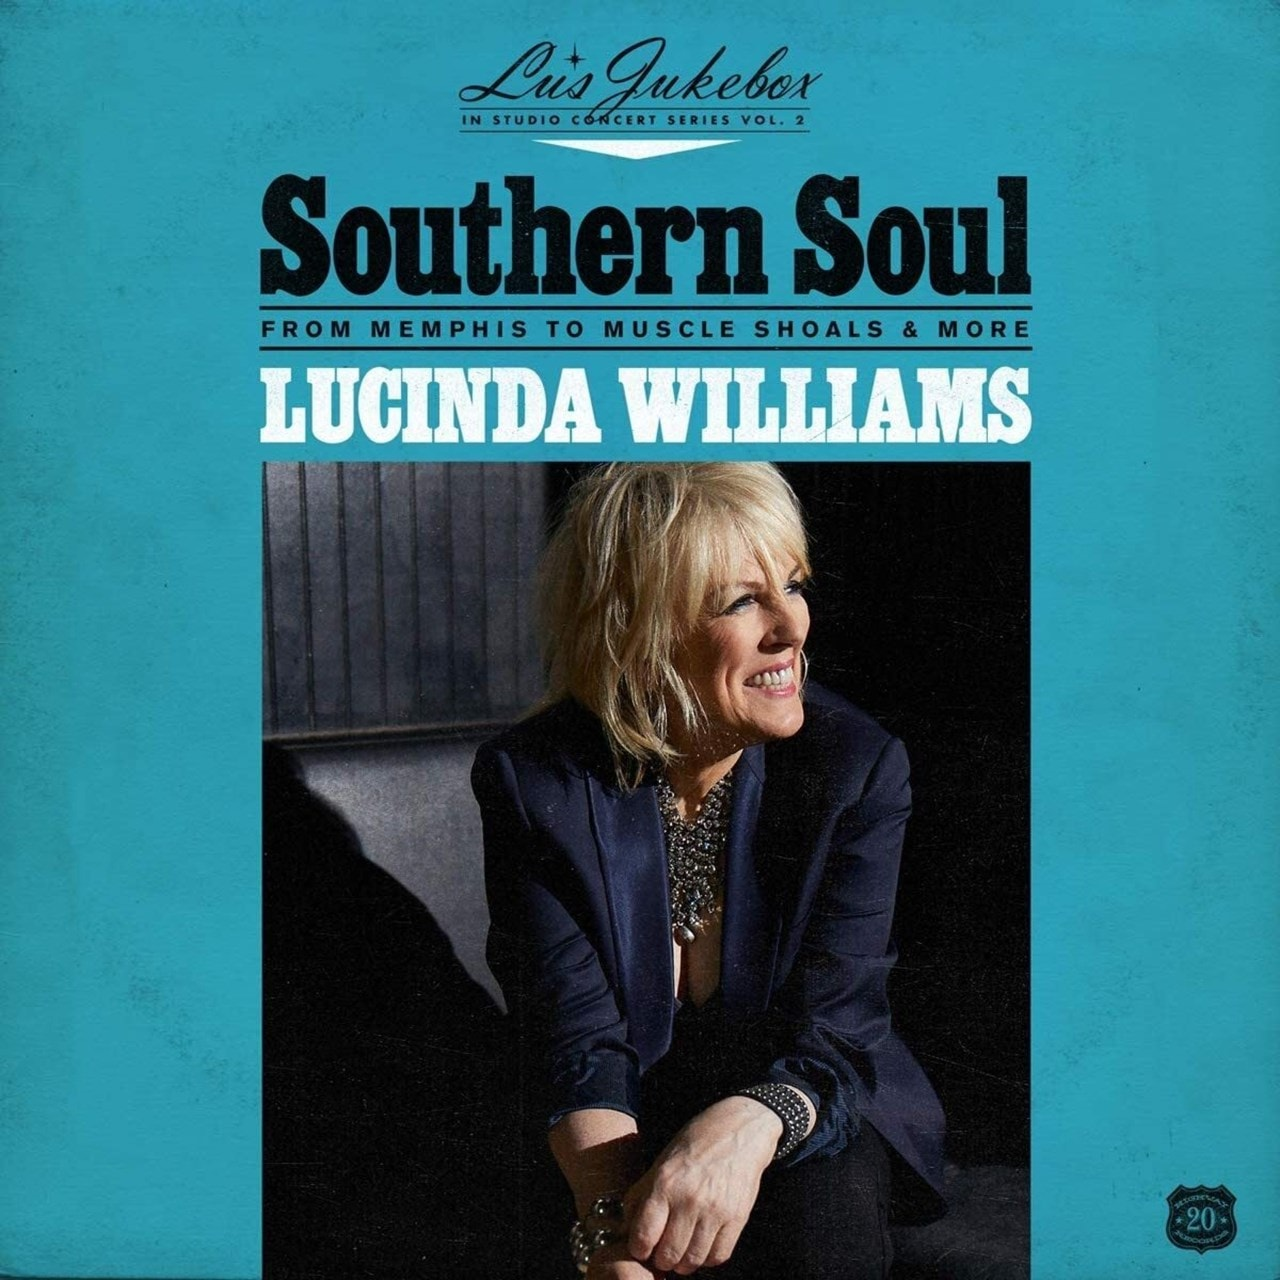 Lu's Jukebox: Southern Soul: From Memphis to Muscle Shoals - Volume 2 - 1